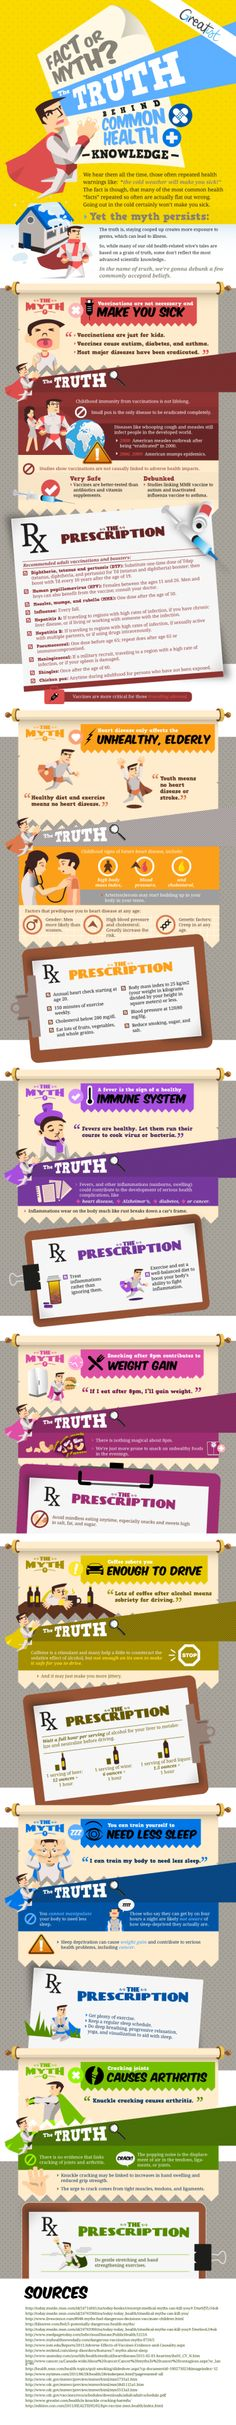 The team at Greatist has created an infographic that debunks myths relating to common health knowledge. One myth that I can't believe isn't true is the common belief that cracking your knuckles and other joints is linked to arthritis Fitness Nutrition, Health And Nutrition, Health Exercise, Nutrition Guide, Sports Nutrition, Health Care, Health Literacy, Fitness Motivation, How To Create Infographics